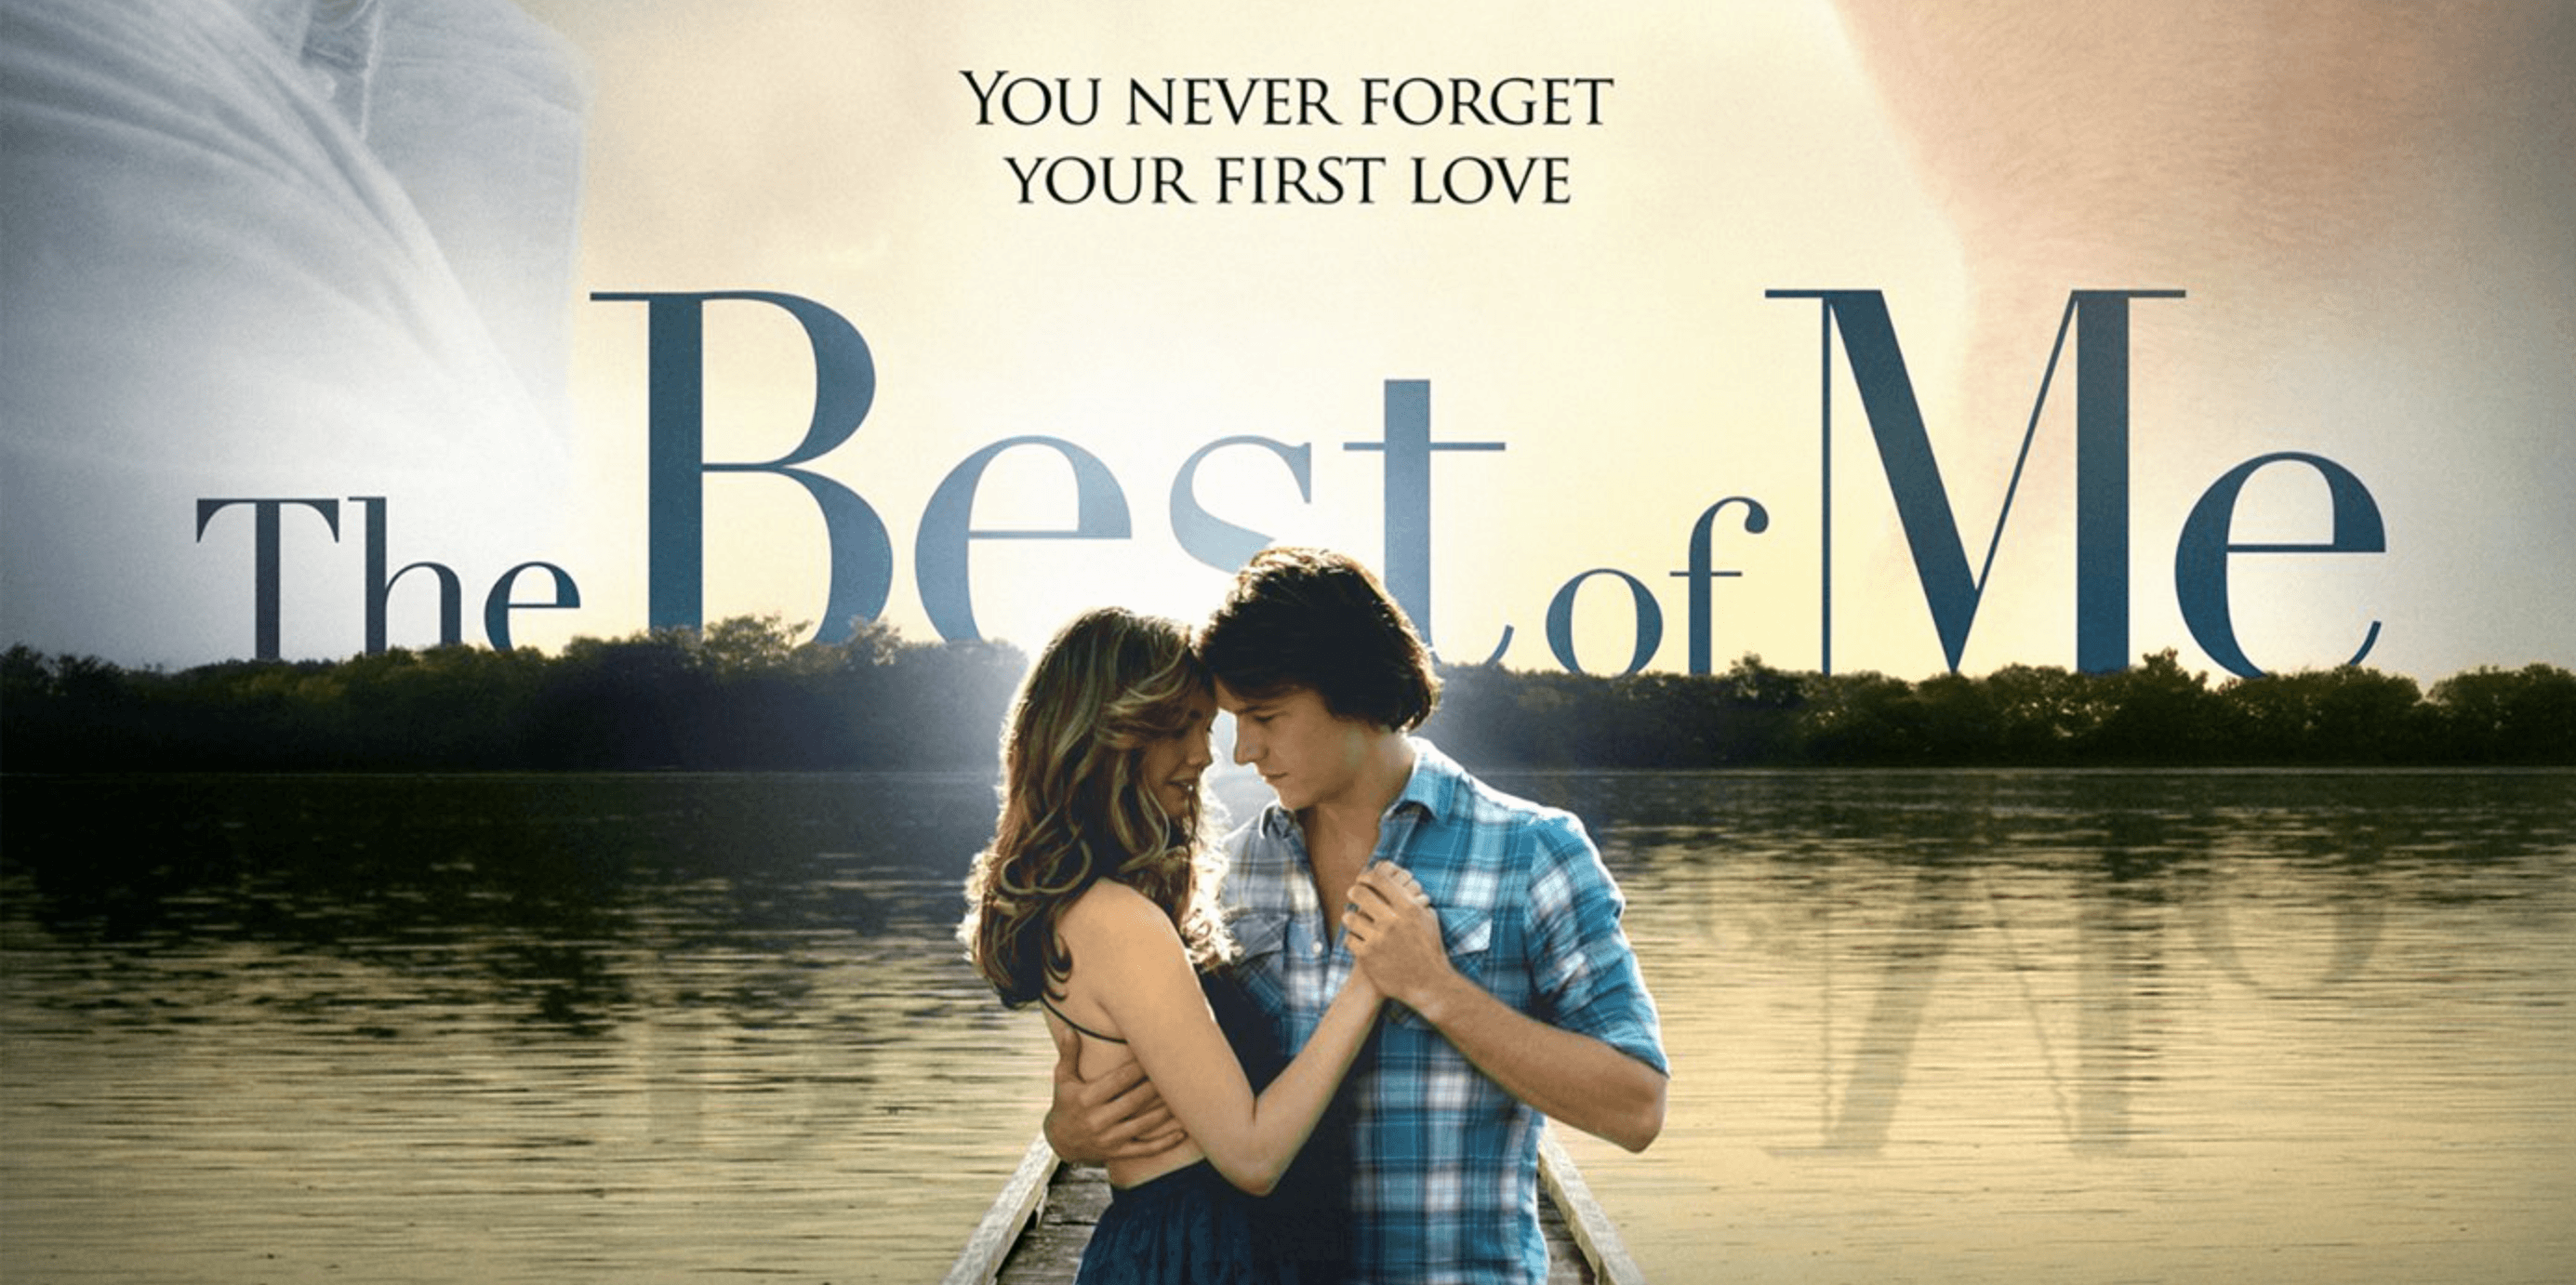 great love movies to watch-the world the best of me